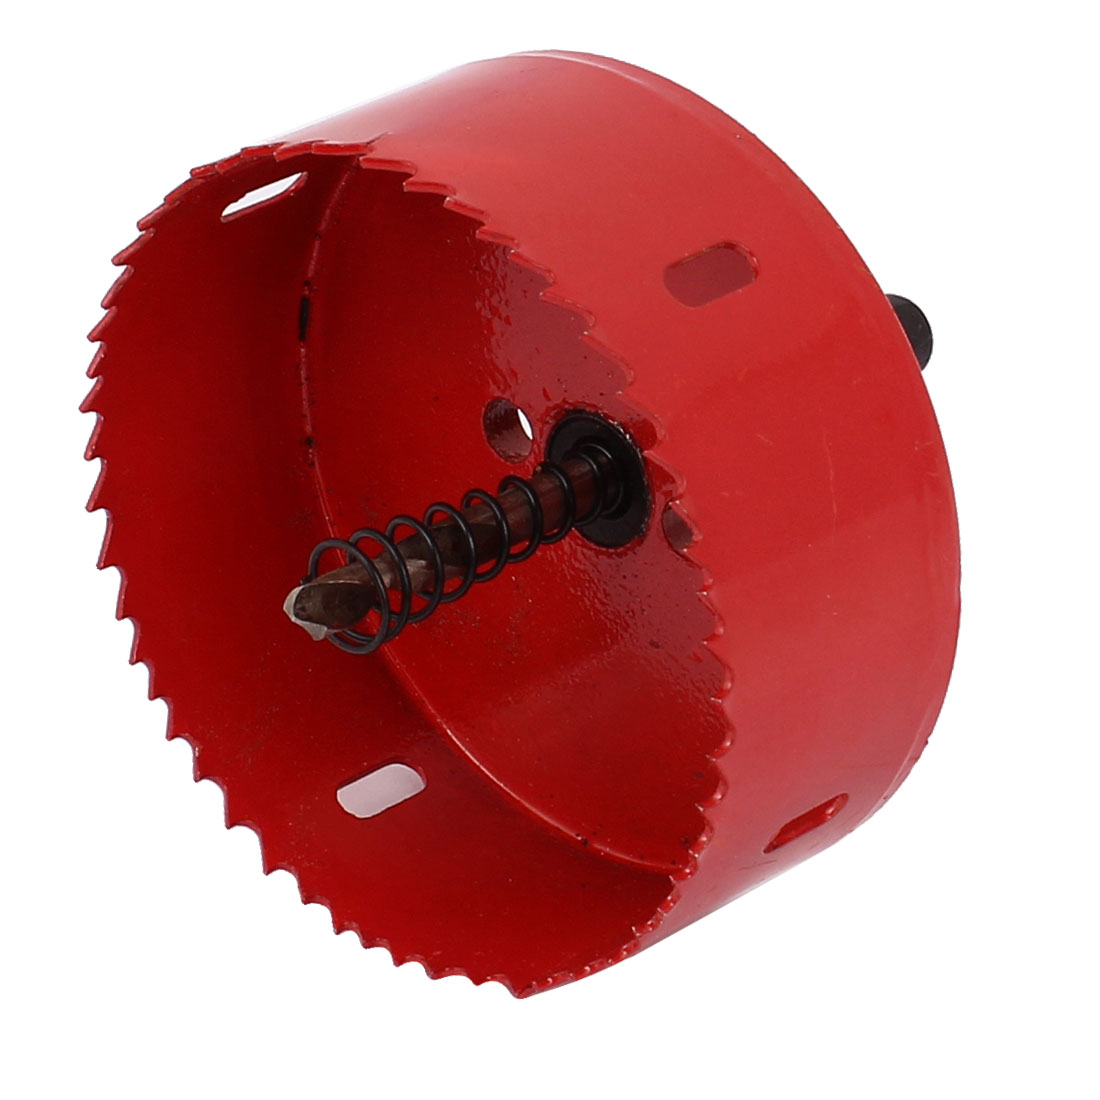 Подробнее о UXCELL 90Mm Cutting Dia Toothed Bi Metal Hole Saw Cutter Drill Bit Red For Wood Iron uxcell 22mm cutting dia electrical spiral bit drilling drill metal hole saw